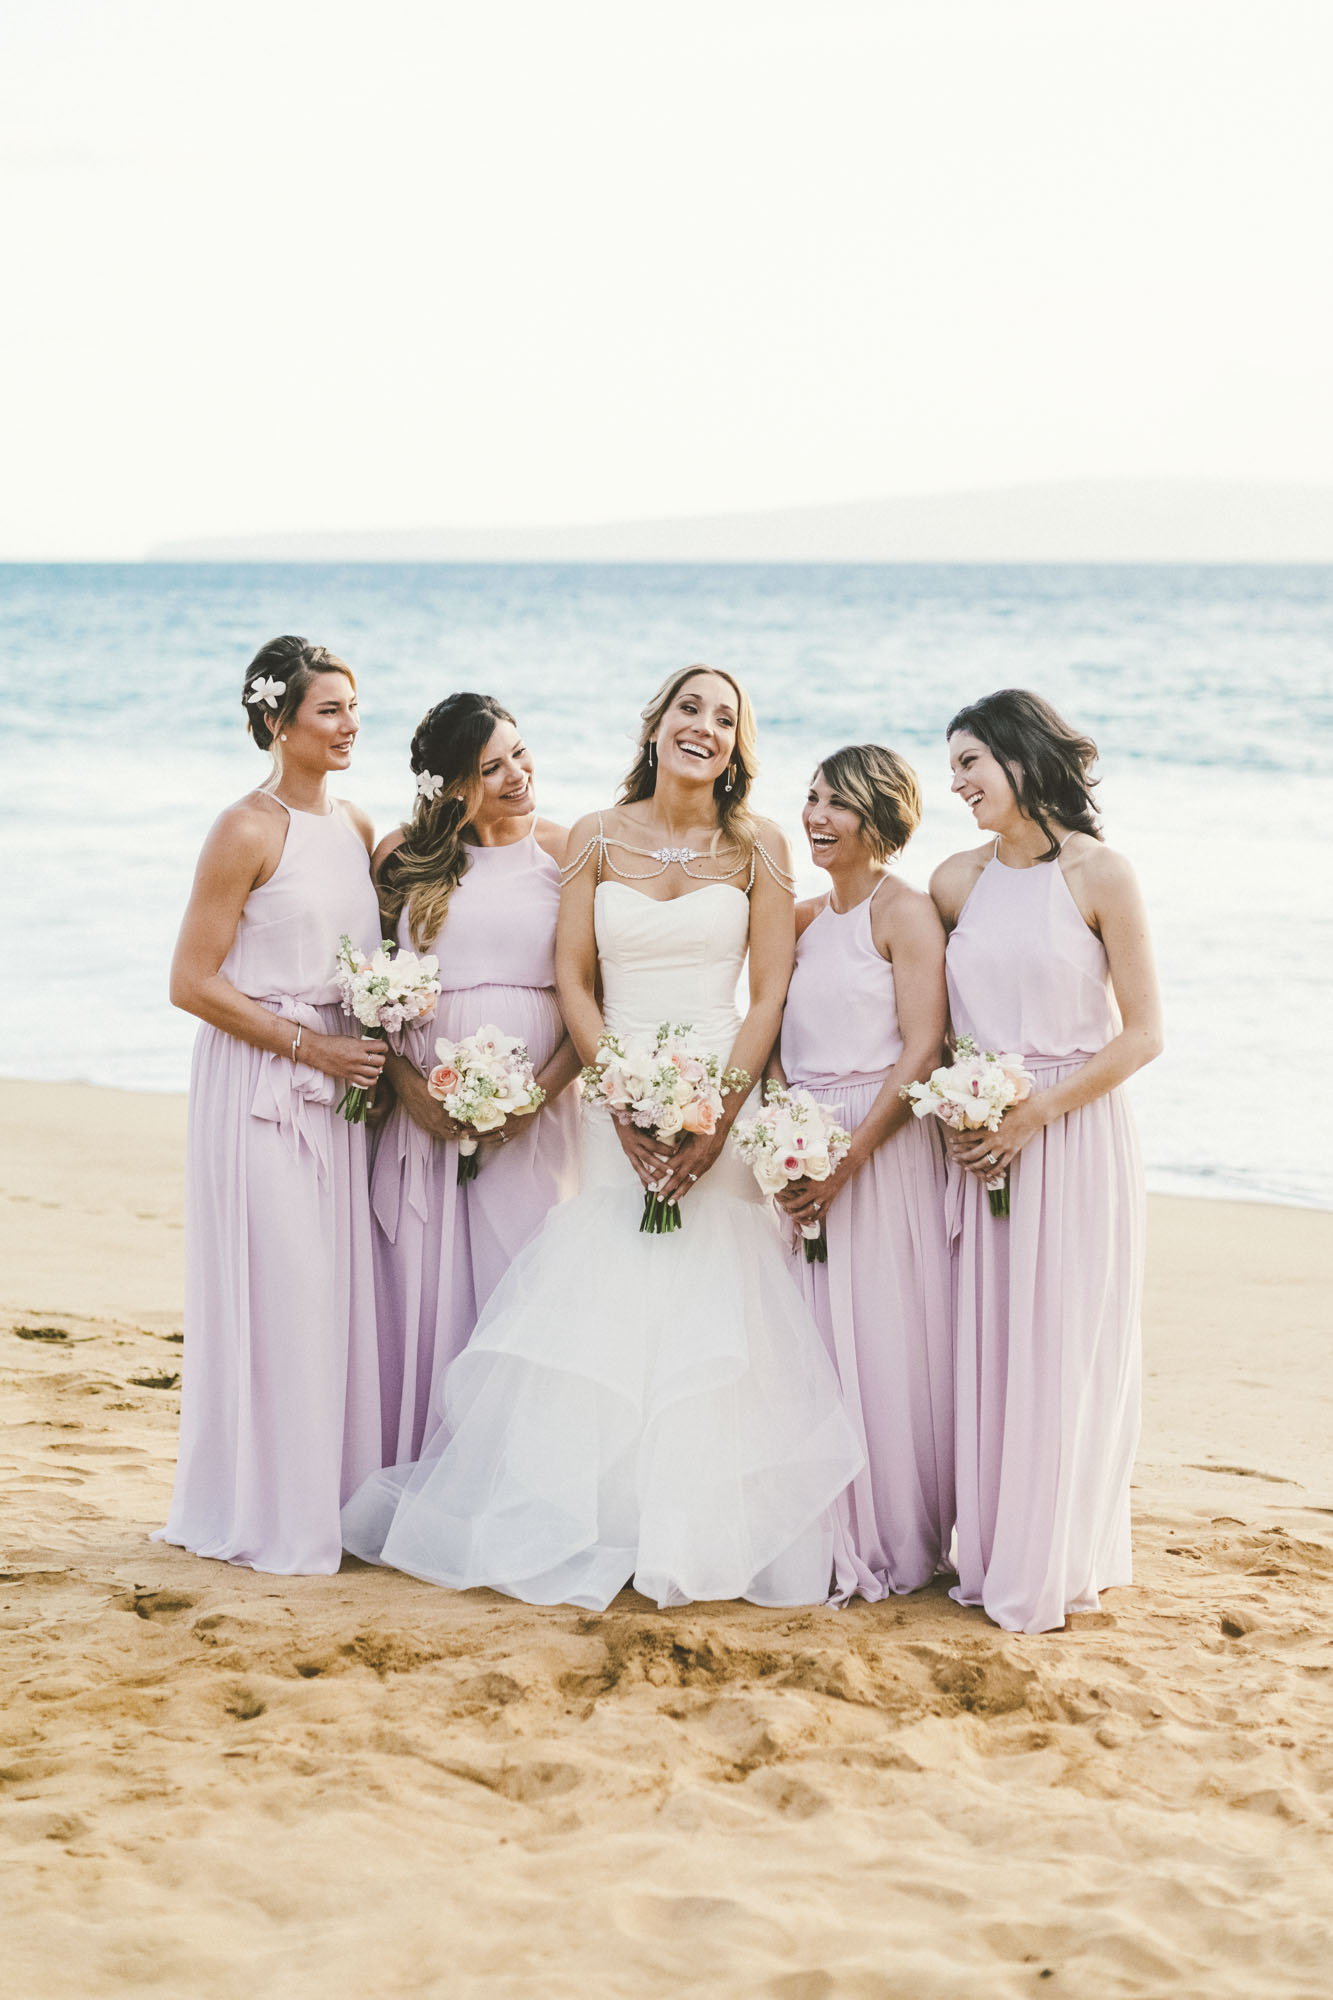 Maui hawaii photographer wedding inspiration_20.jpg